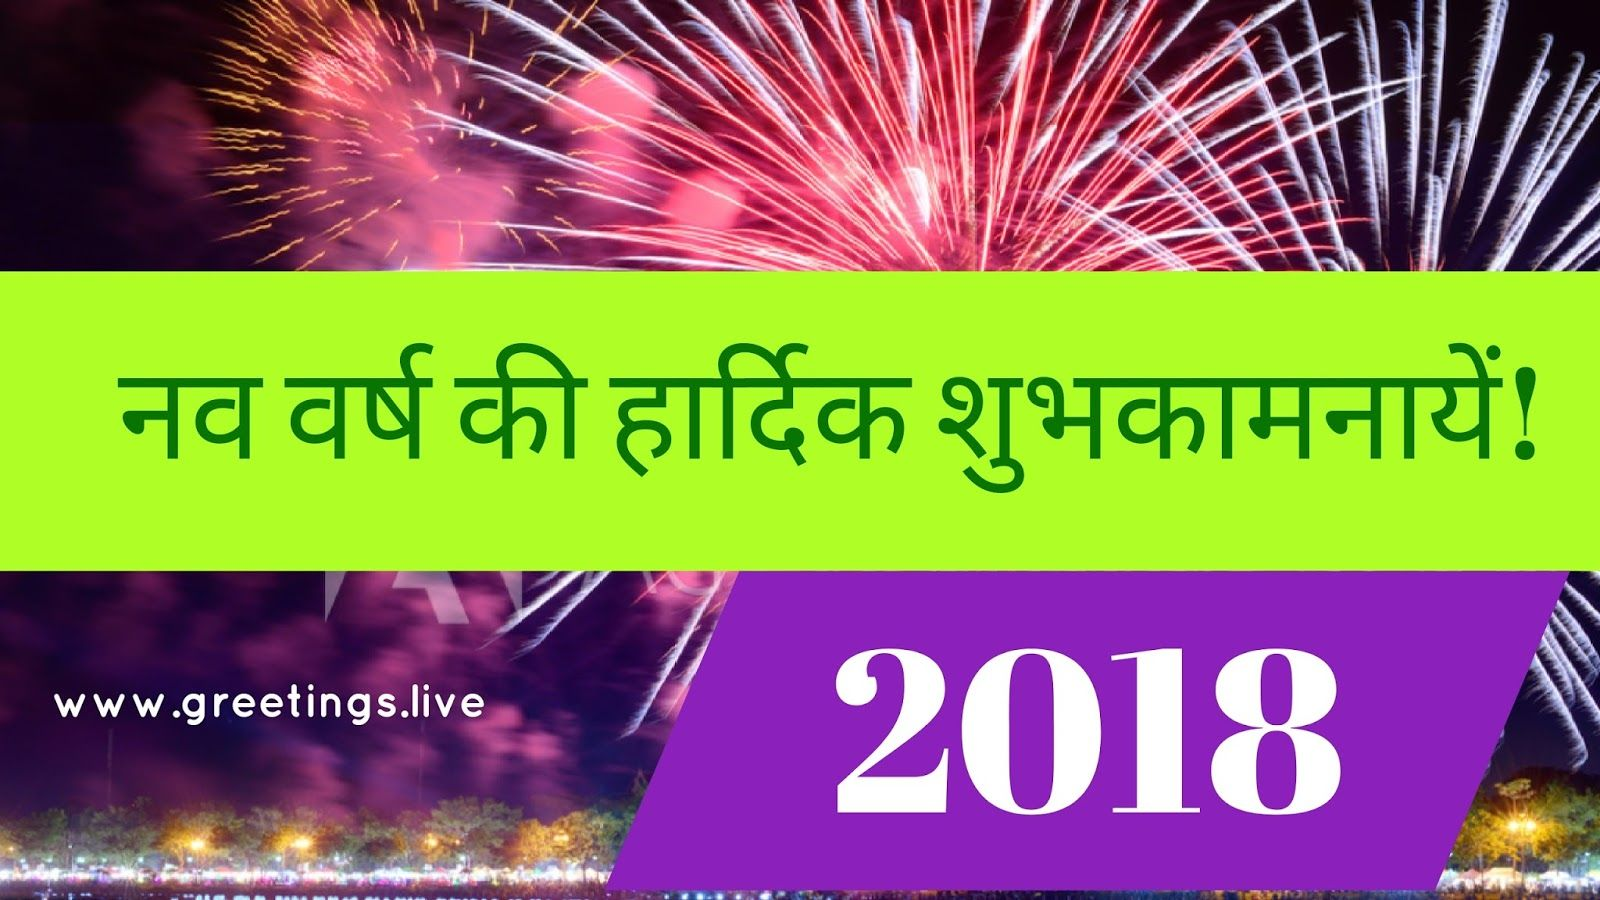 New year in hindi greetings fire works 2018 m4hsunfo